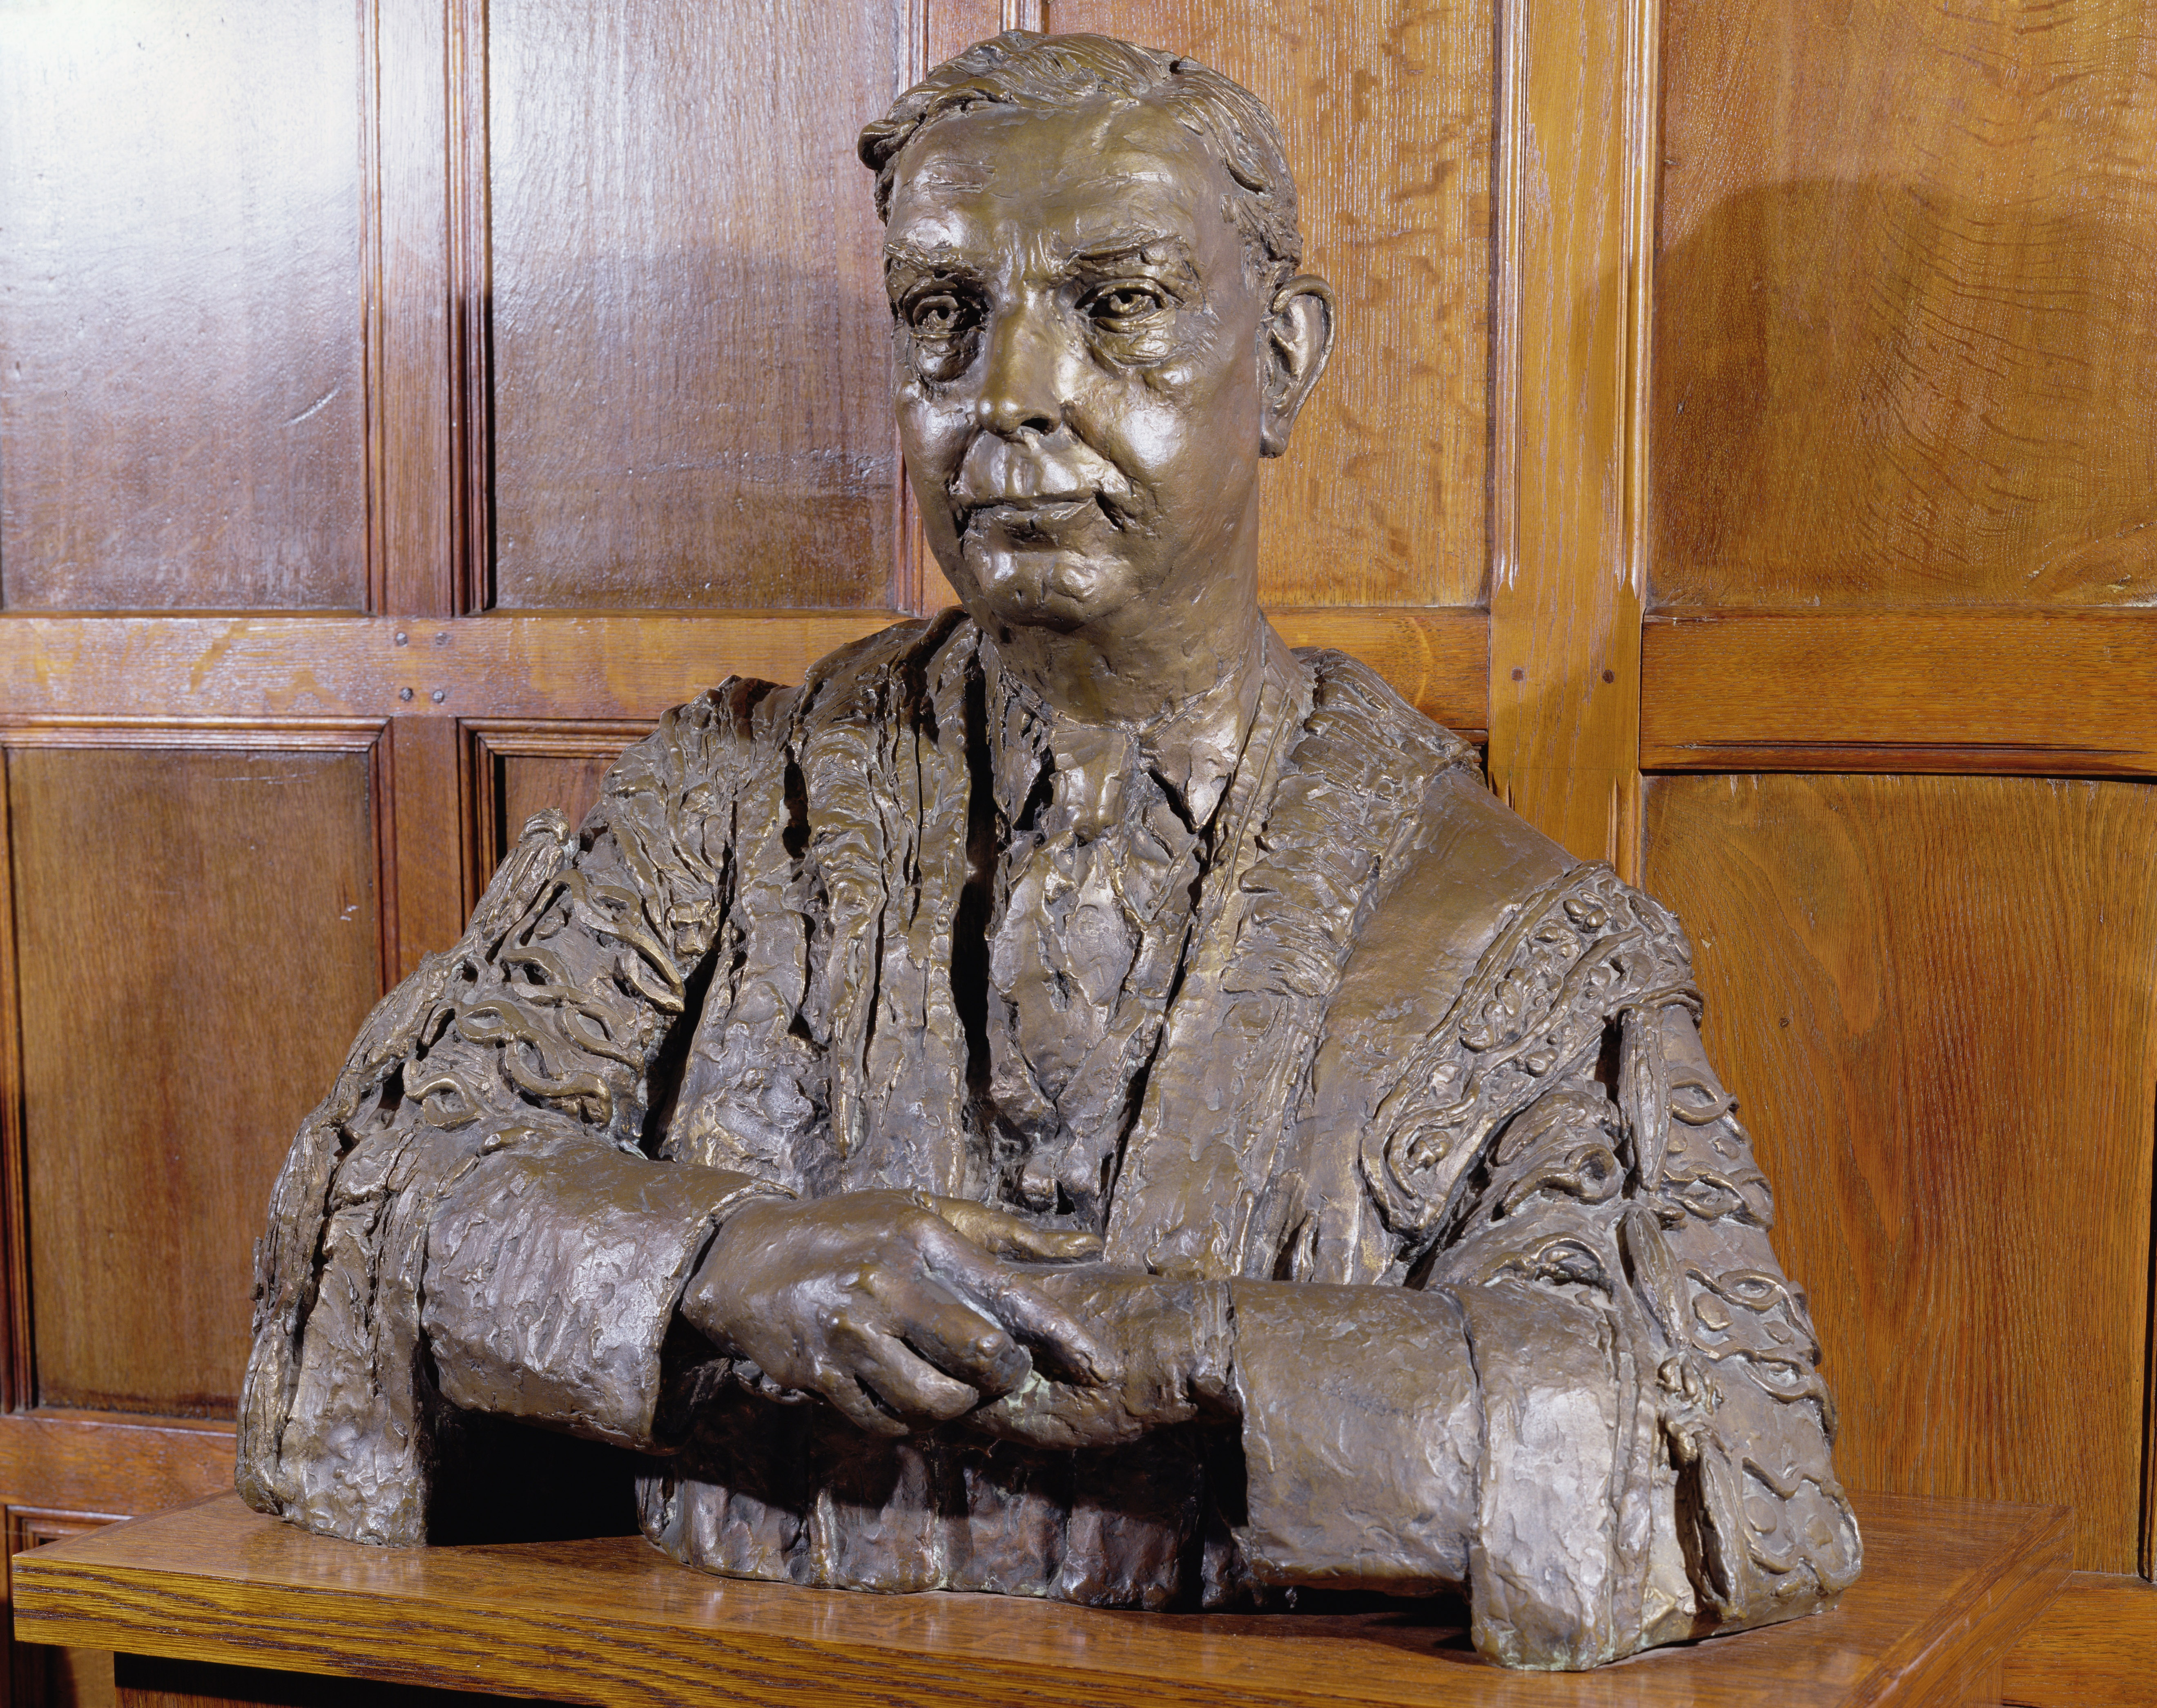 Bronze bust of Lord Brain by Sir Jacob Epstein. Commissioned by the Royal College of Physicians and completed in 1958 to celebrate his Presidency from 1950-1957.